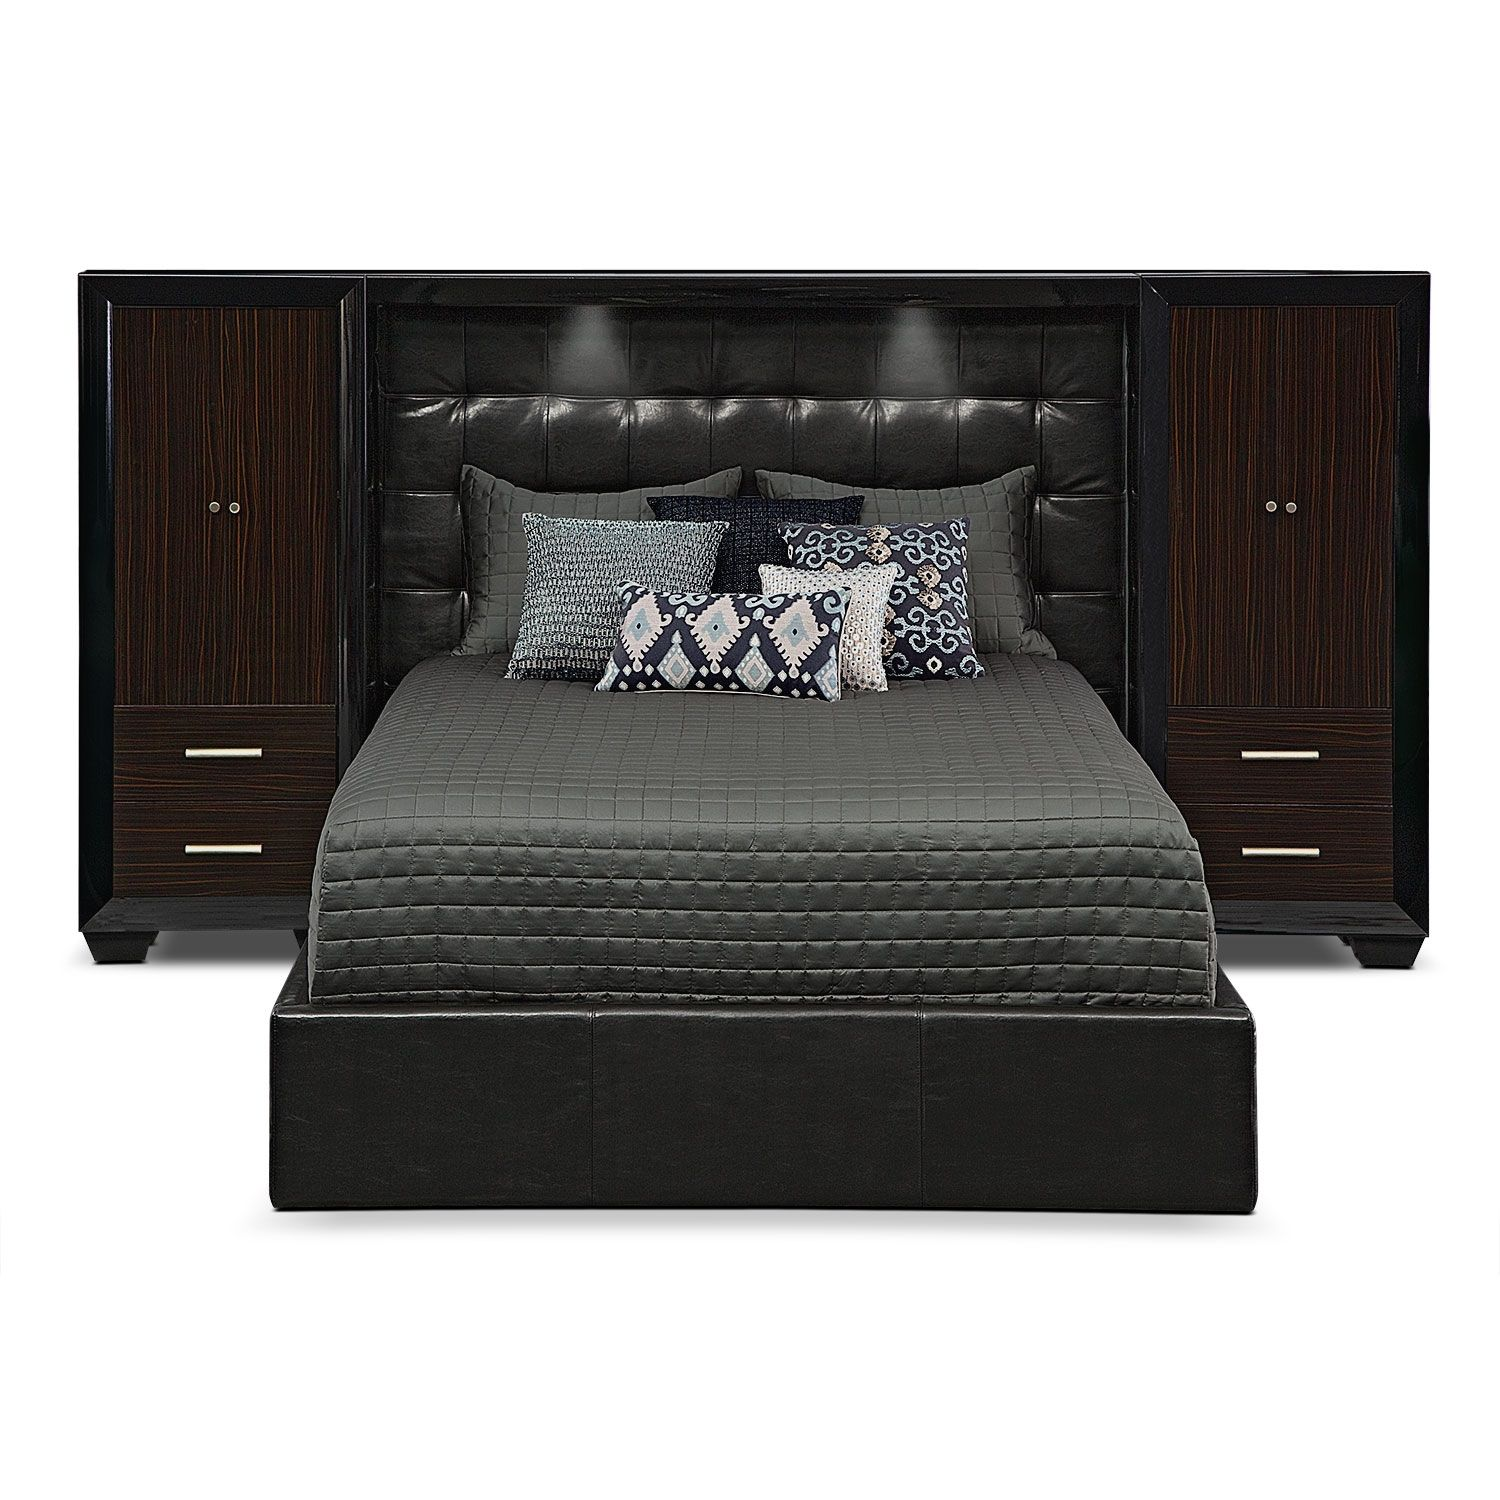 serenity king wall bed with piers cad liked on polyvore featuring home furniture beds casual furniture king size furniture king size bed